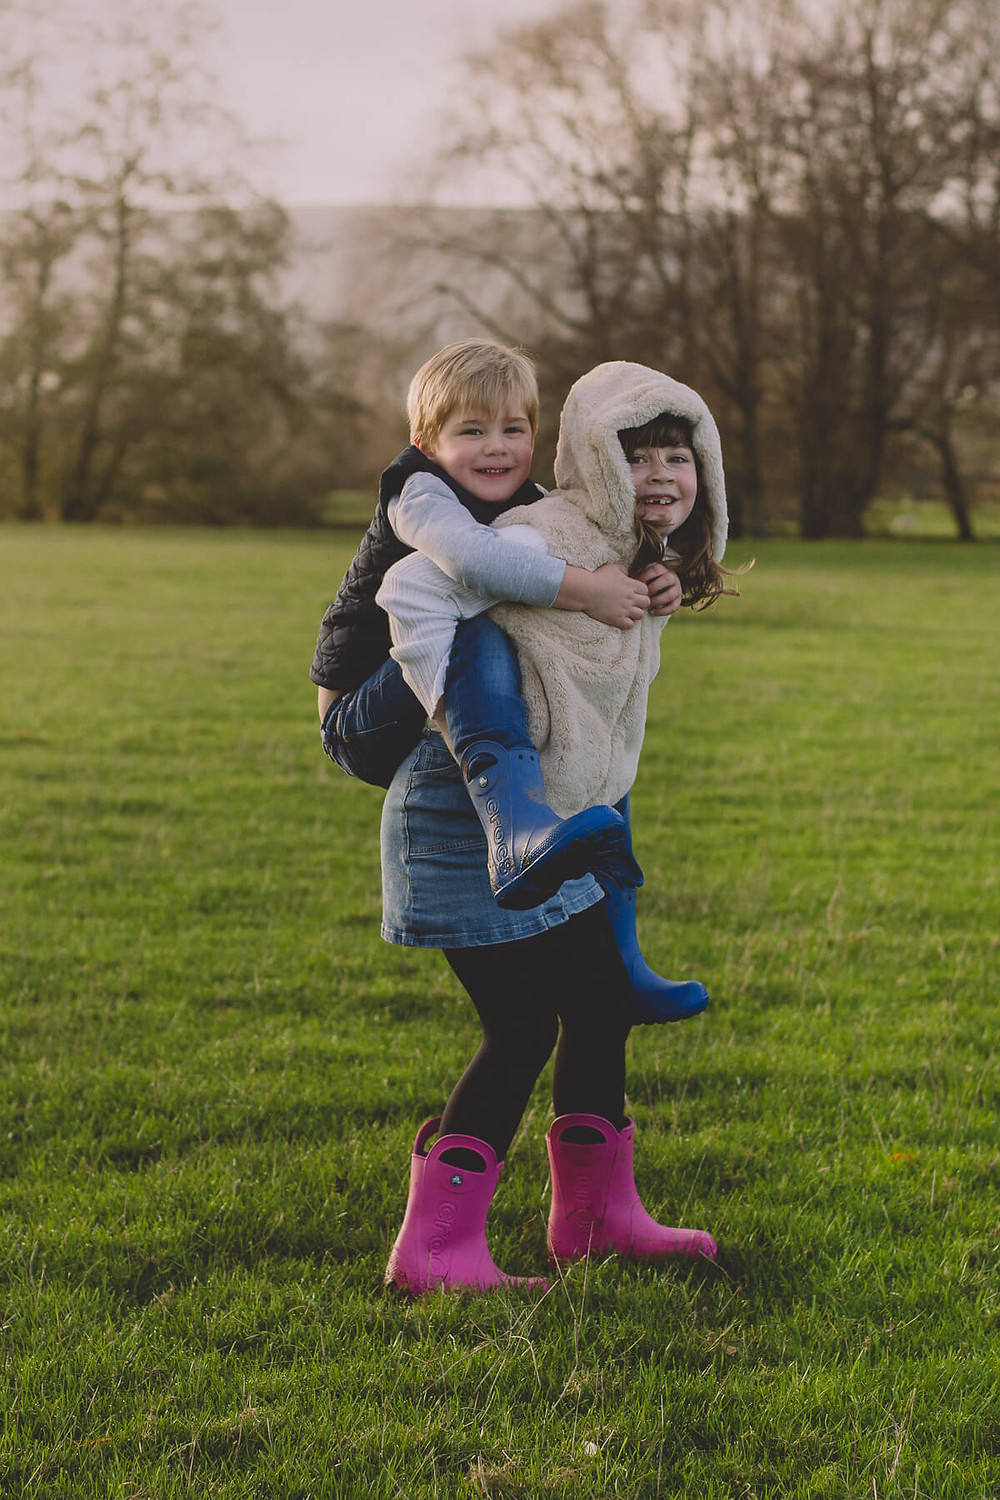 boy getting piggy back from big sister running playing smile